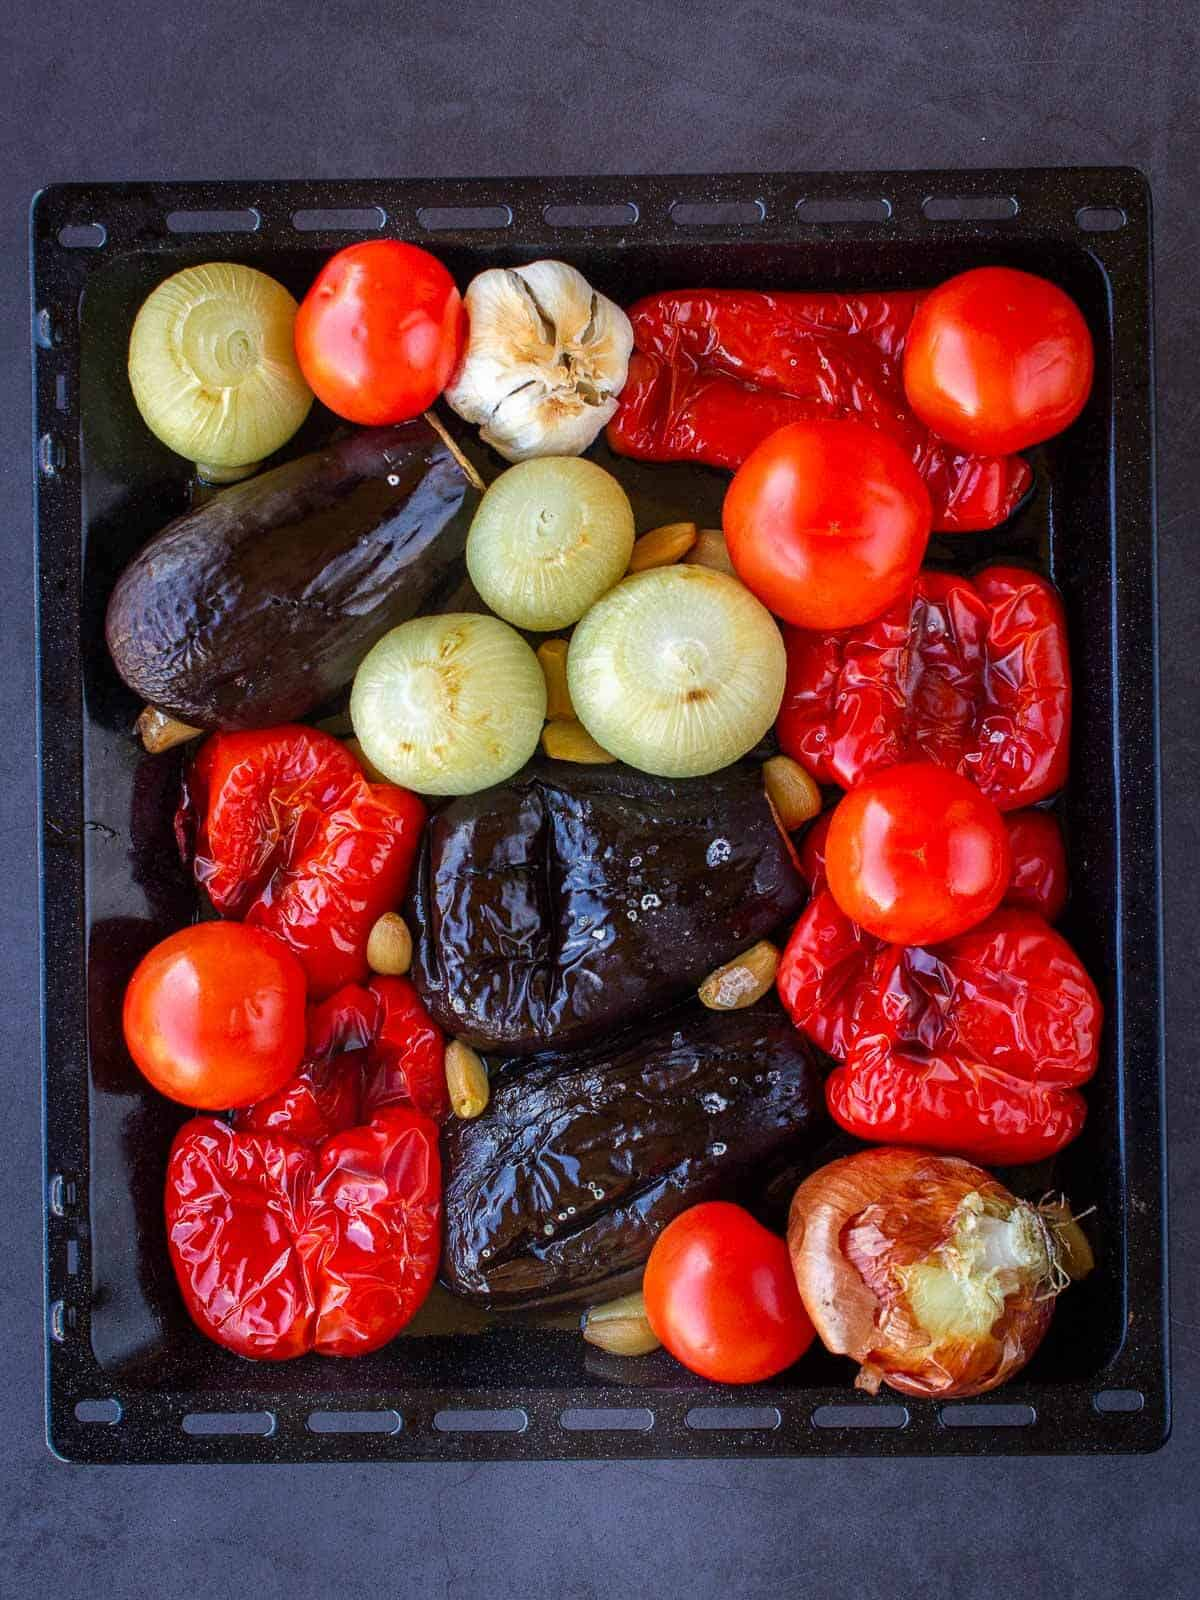 Escalivada cooked in tray